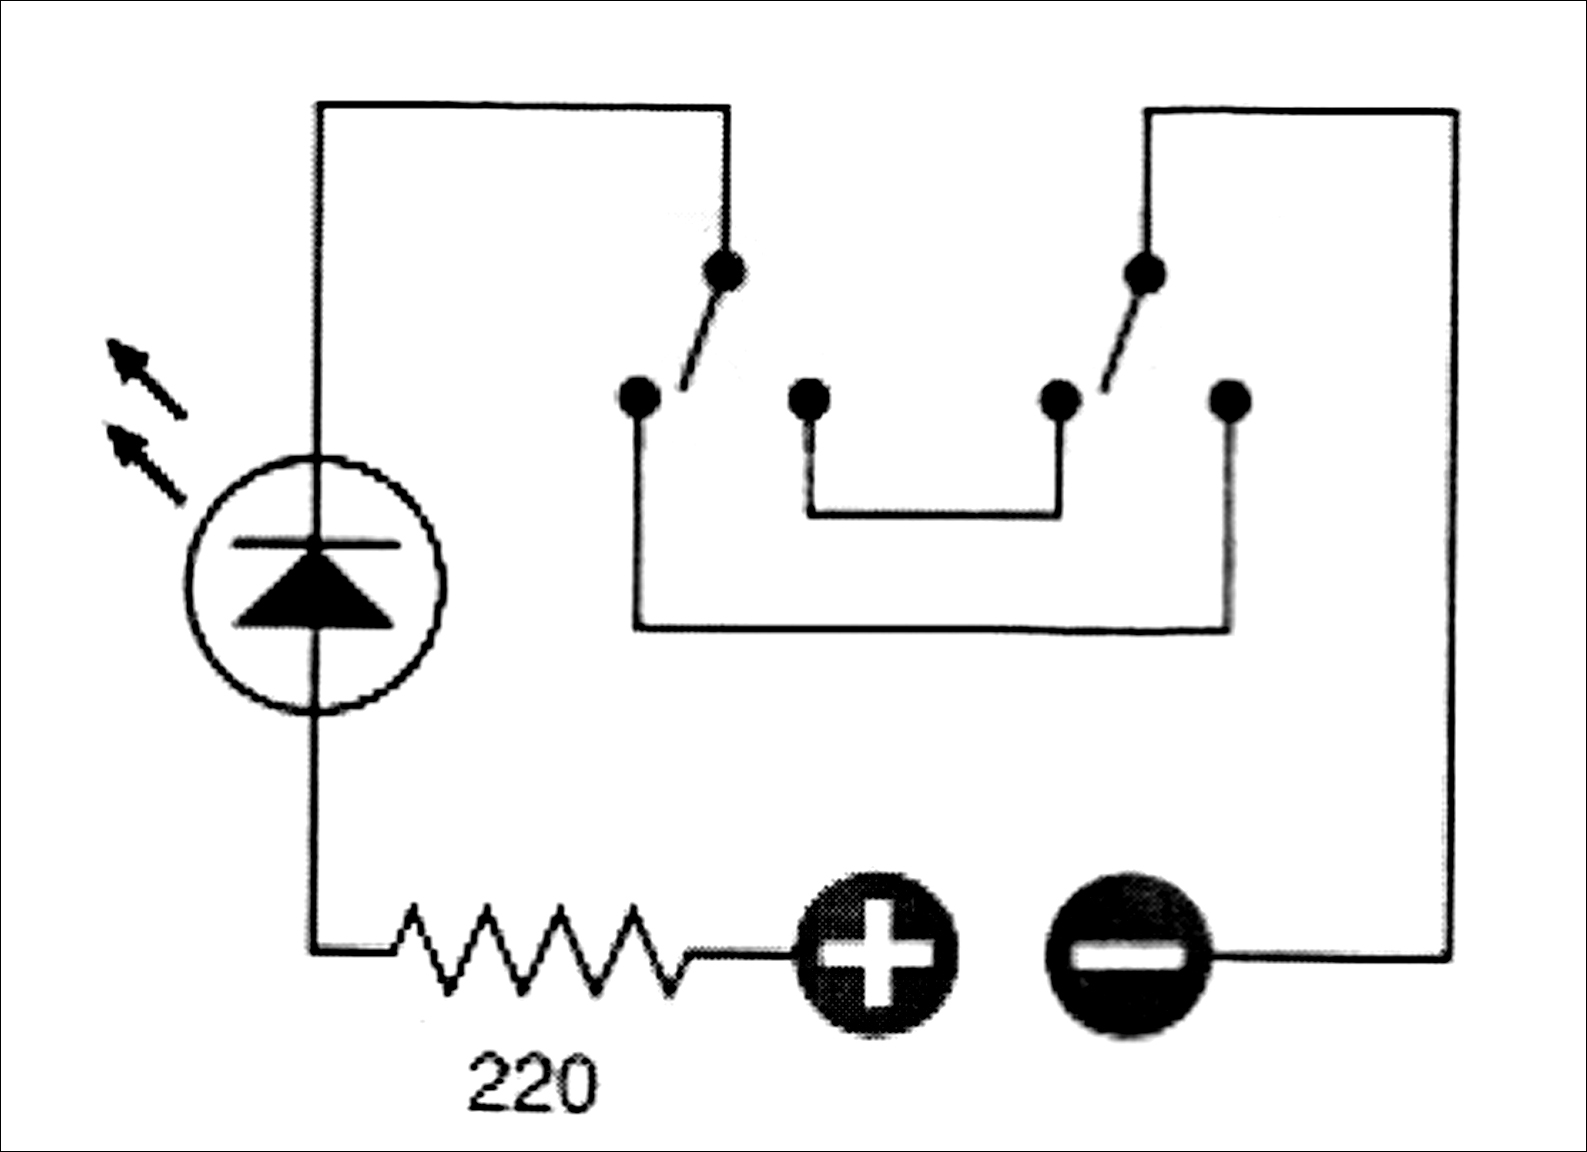 Electronics Cchoy January 2013 Relay Board Schematic 03 Switches Relays